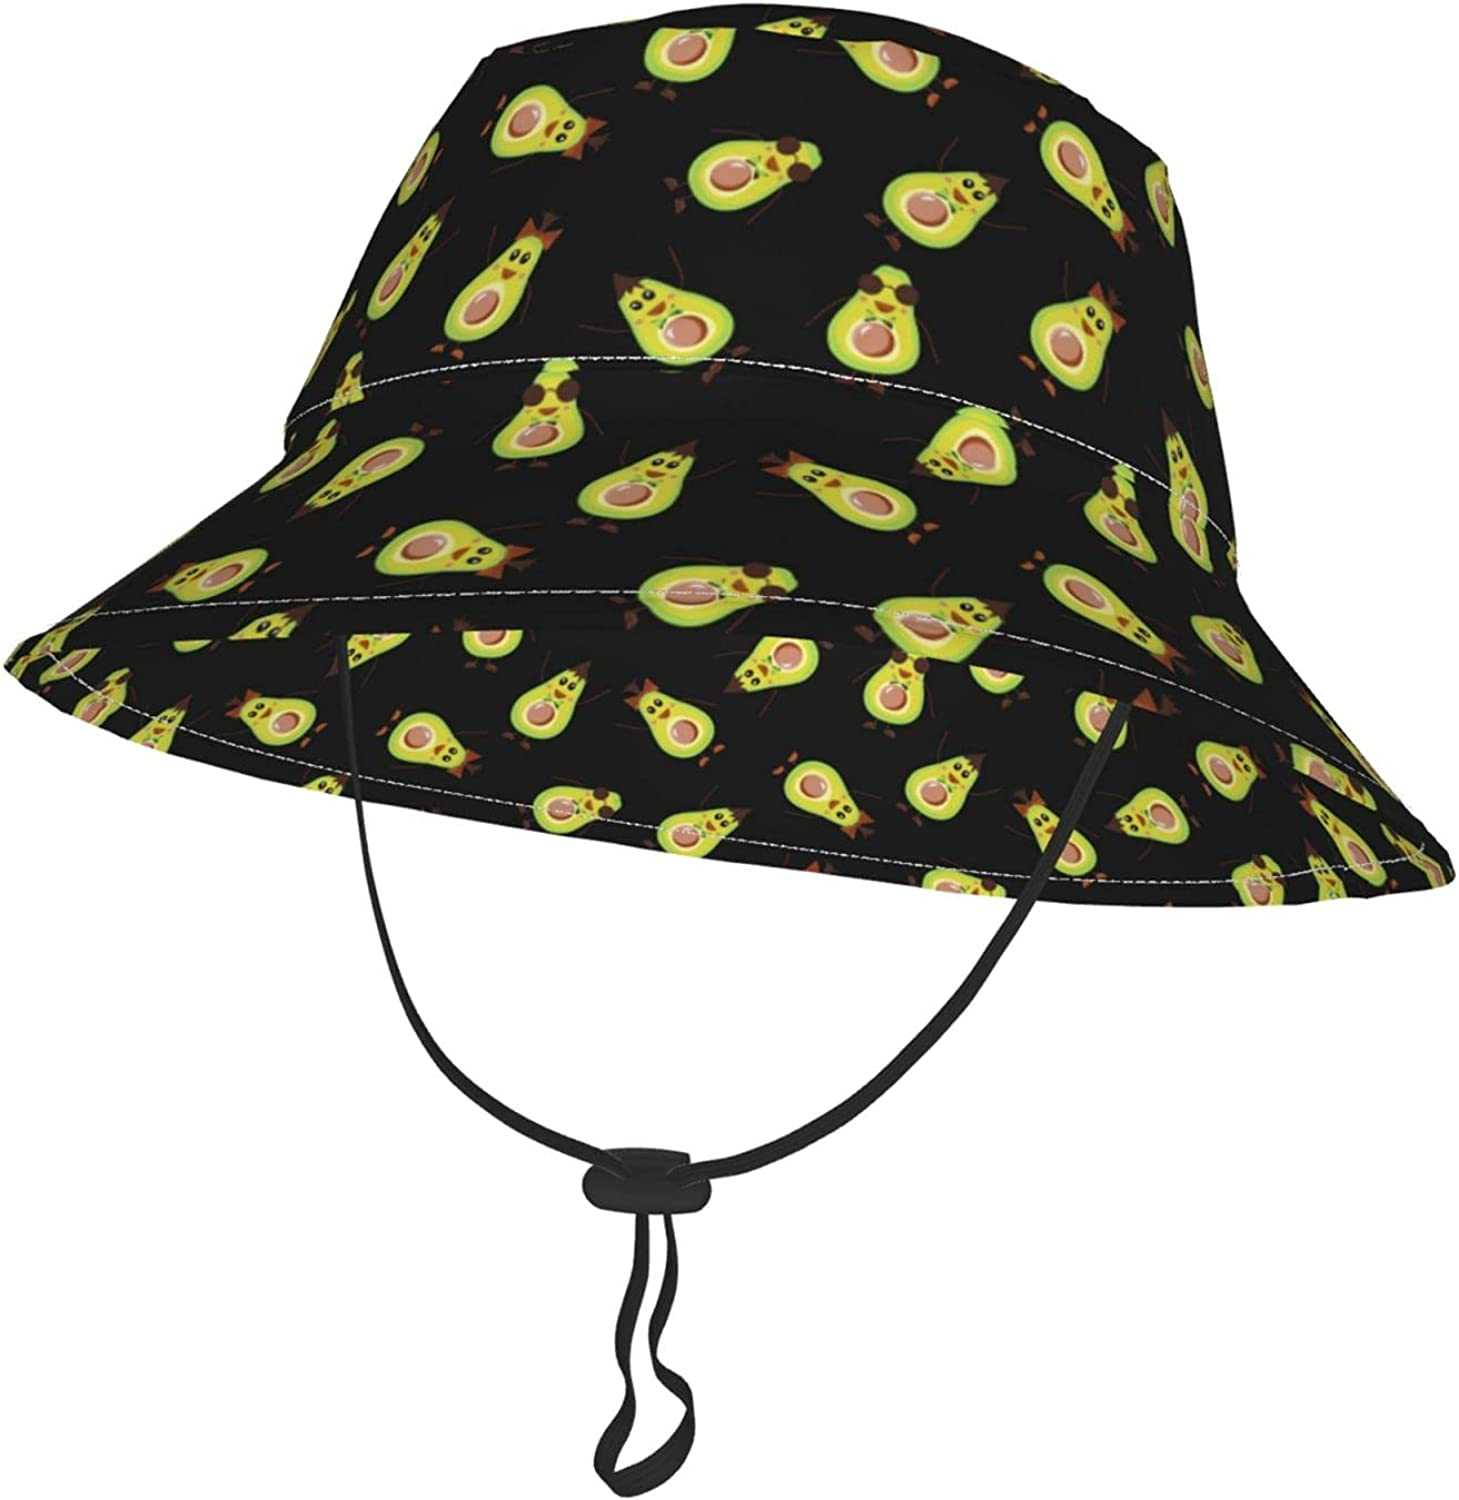 Funny Baby Avocados Opening Max 79% OFF large release sale Bucket Hat Toddler Sun Infant Adjus